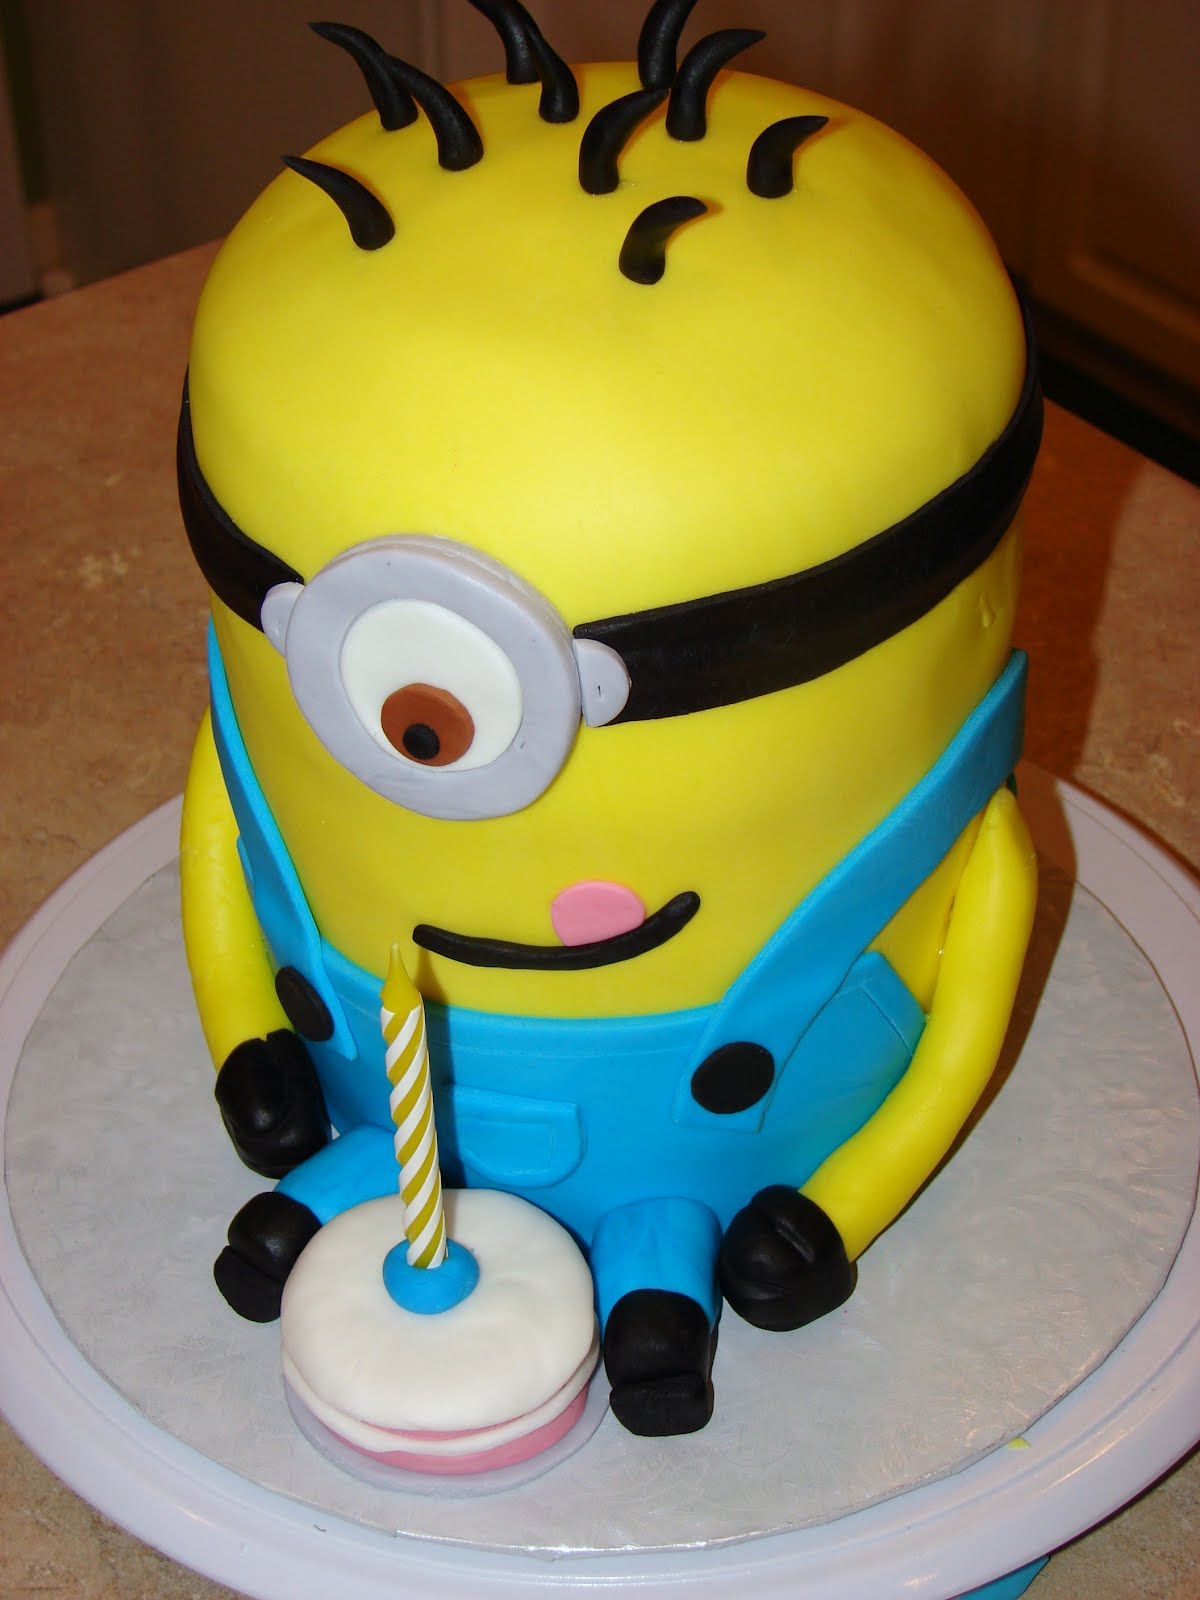 Brilliant Minion Cakes Decoration Ideas Little Birthday Cakes Funny Birthday Cards Online Barepcheapnameinfo